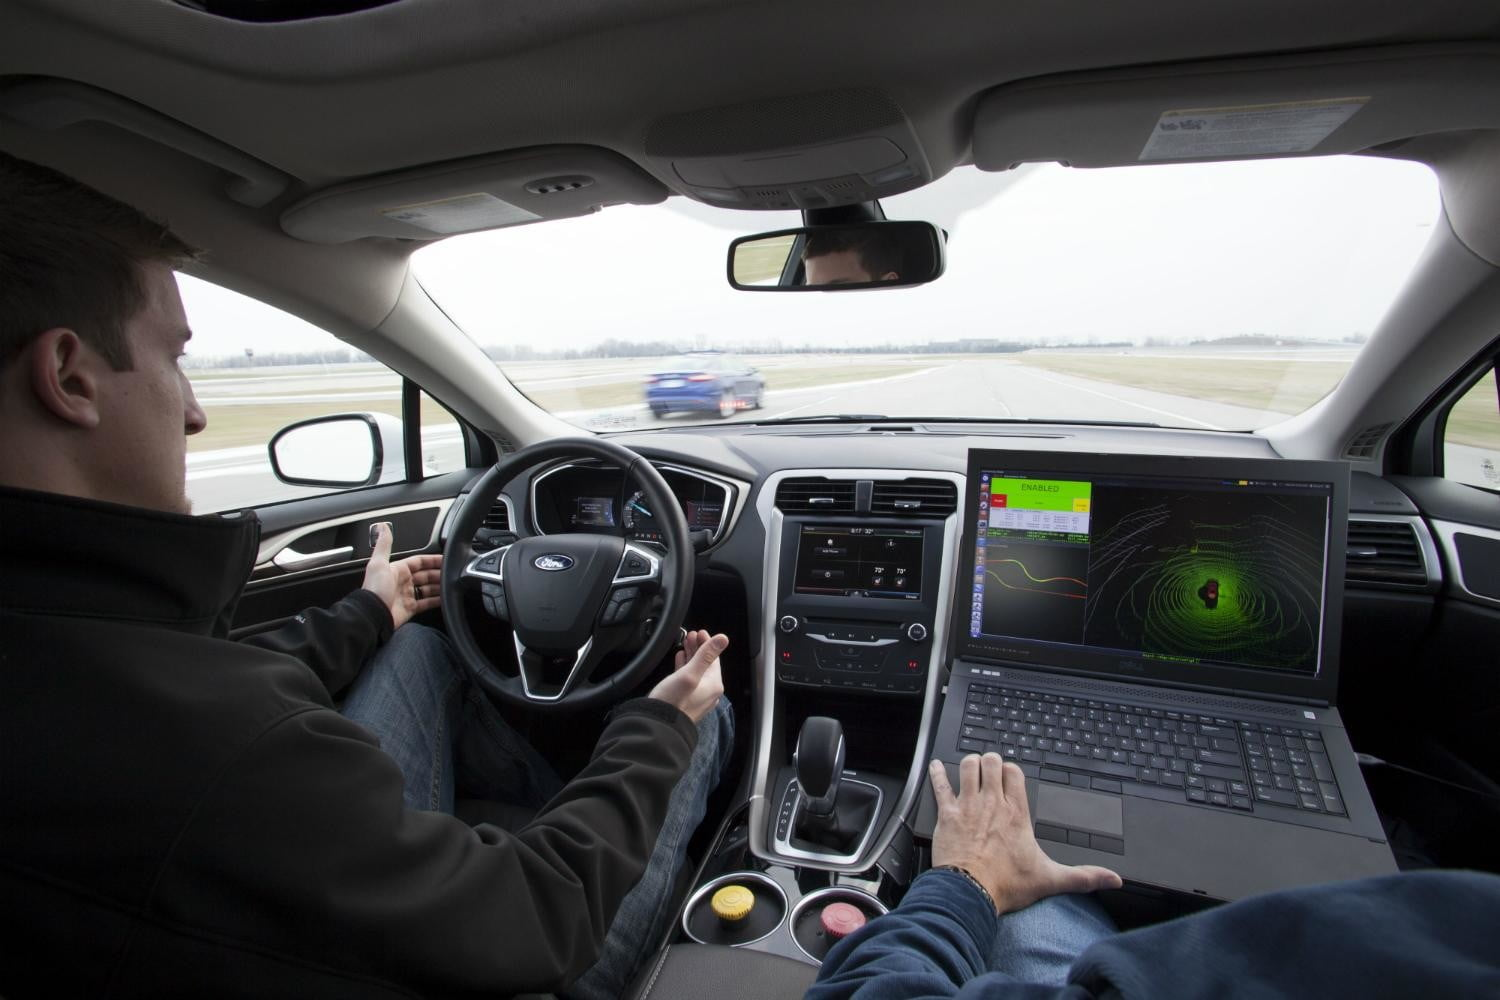 ford releases fusion hybrid research vehicle will explore autonomous driving tech 2